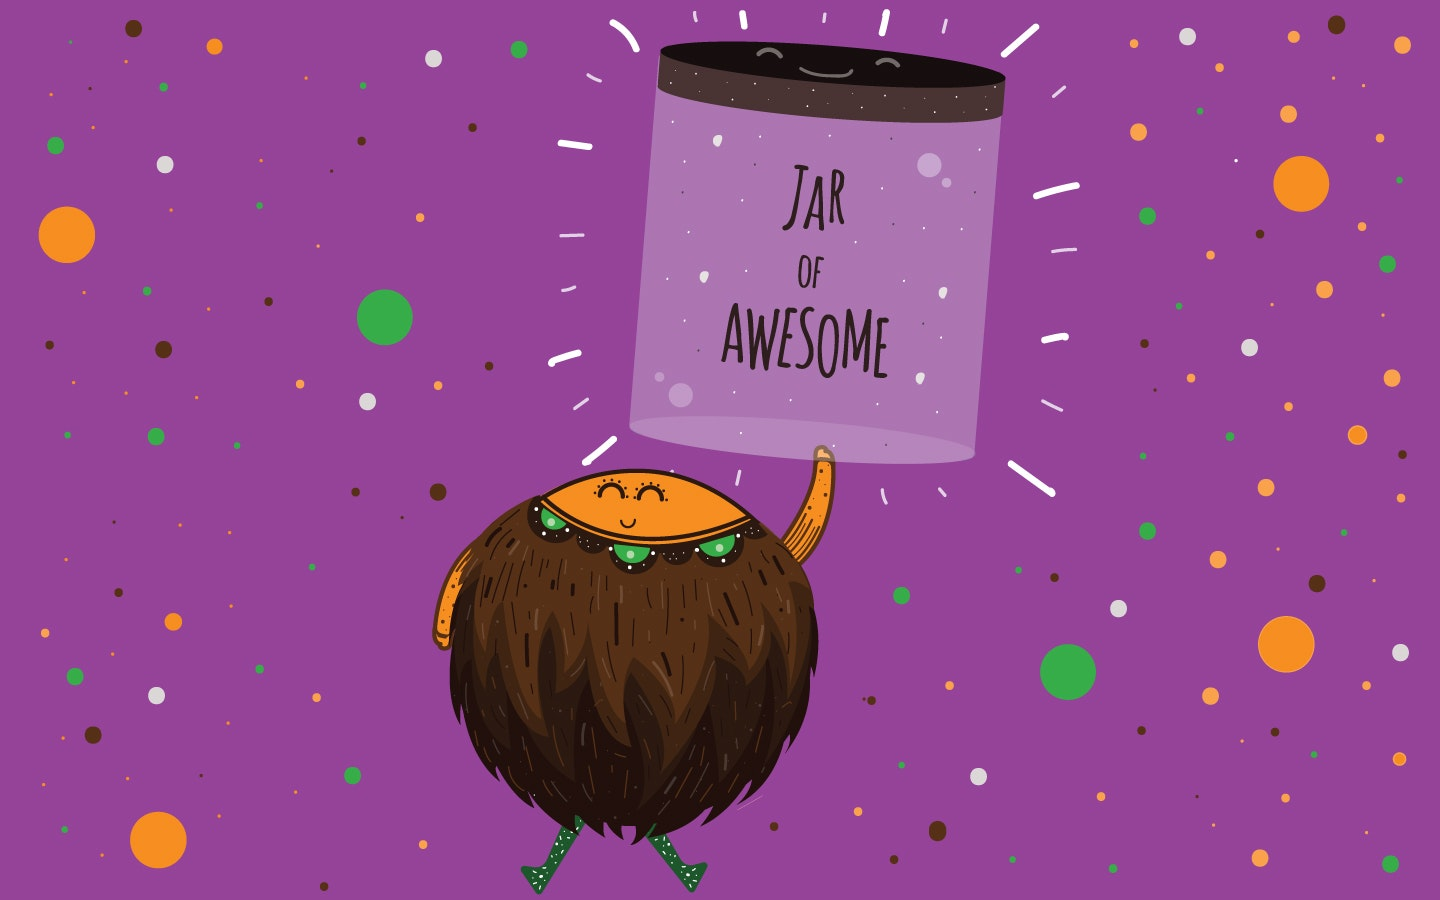 Create a jar of awesome